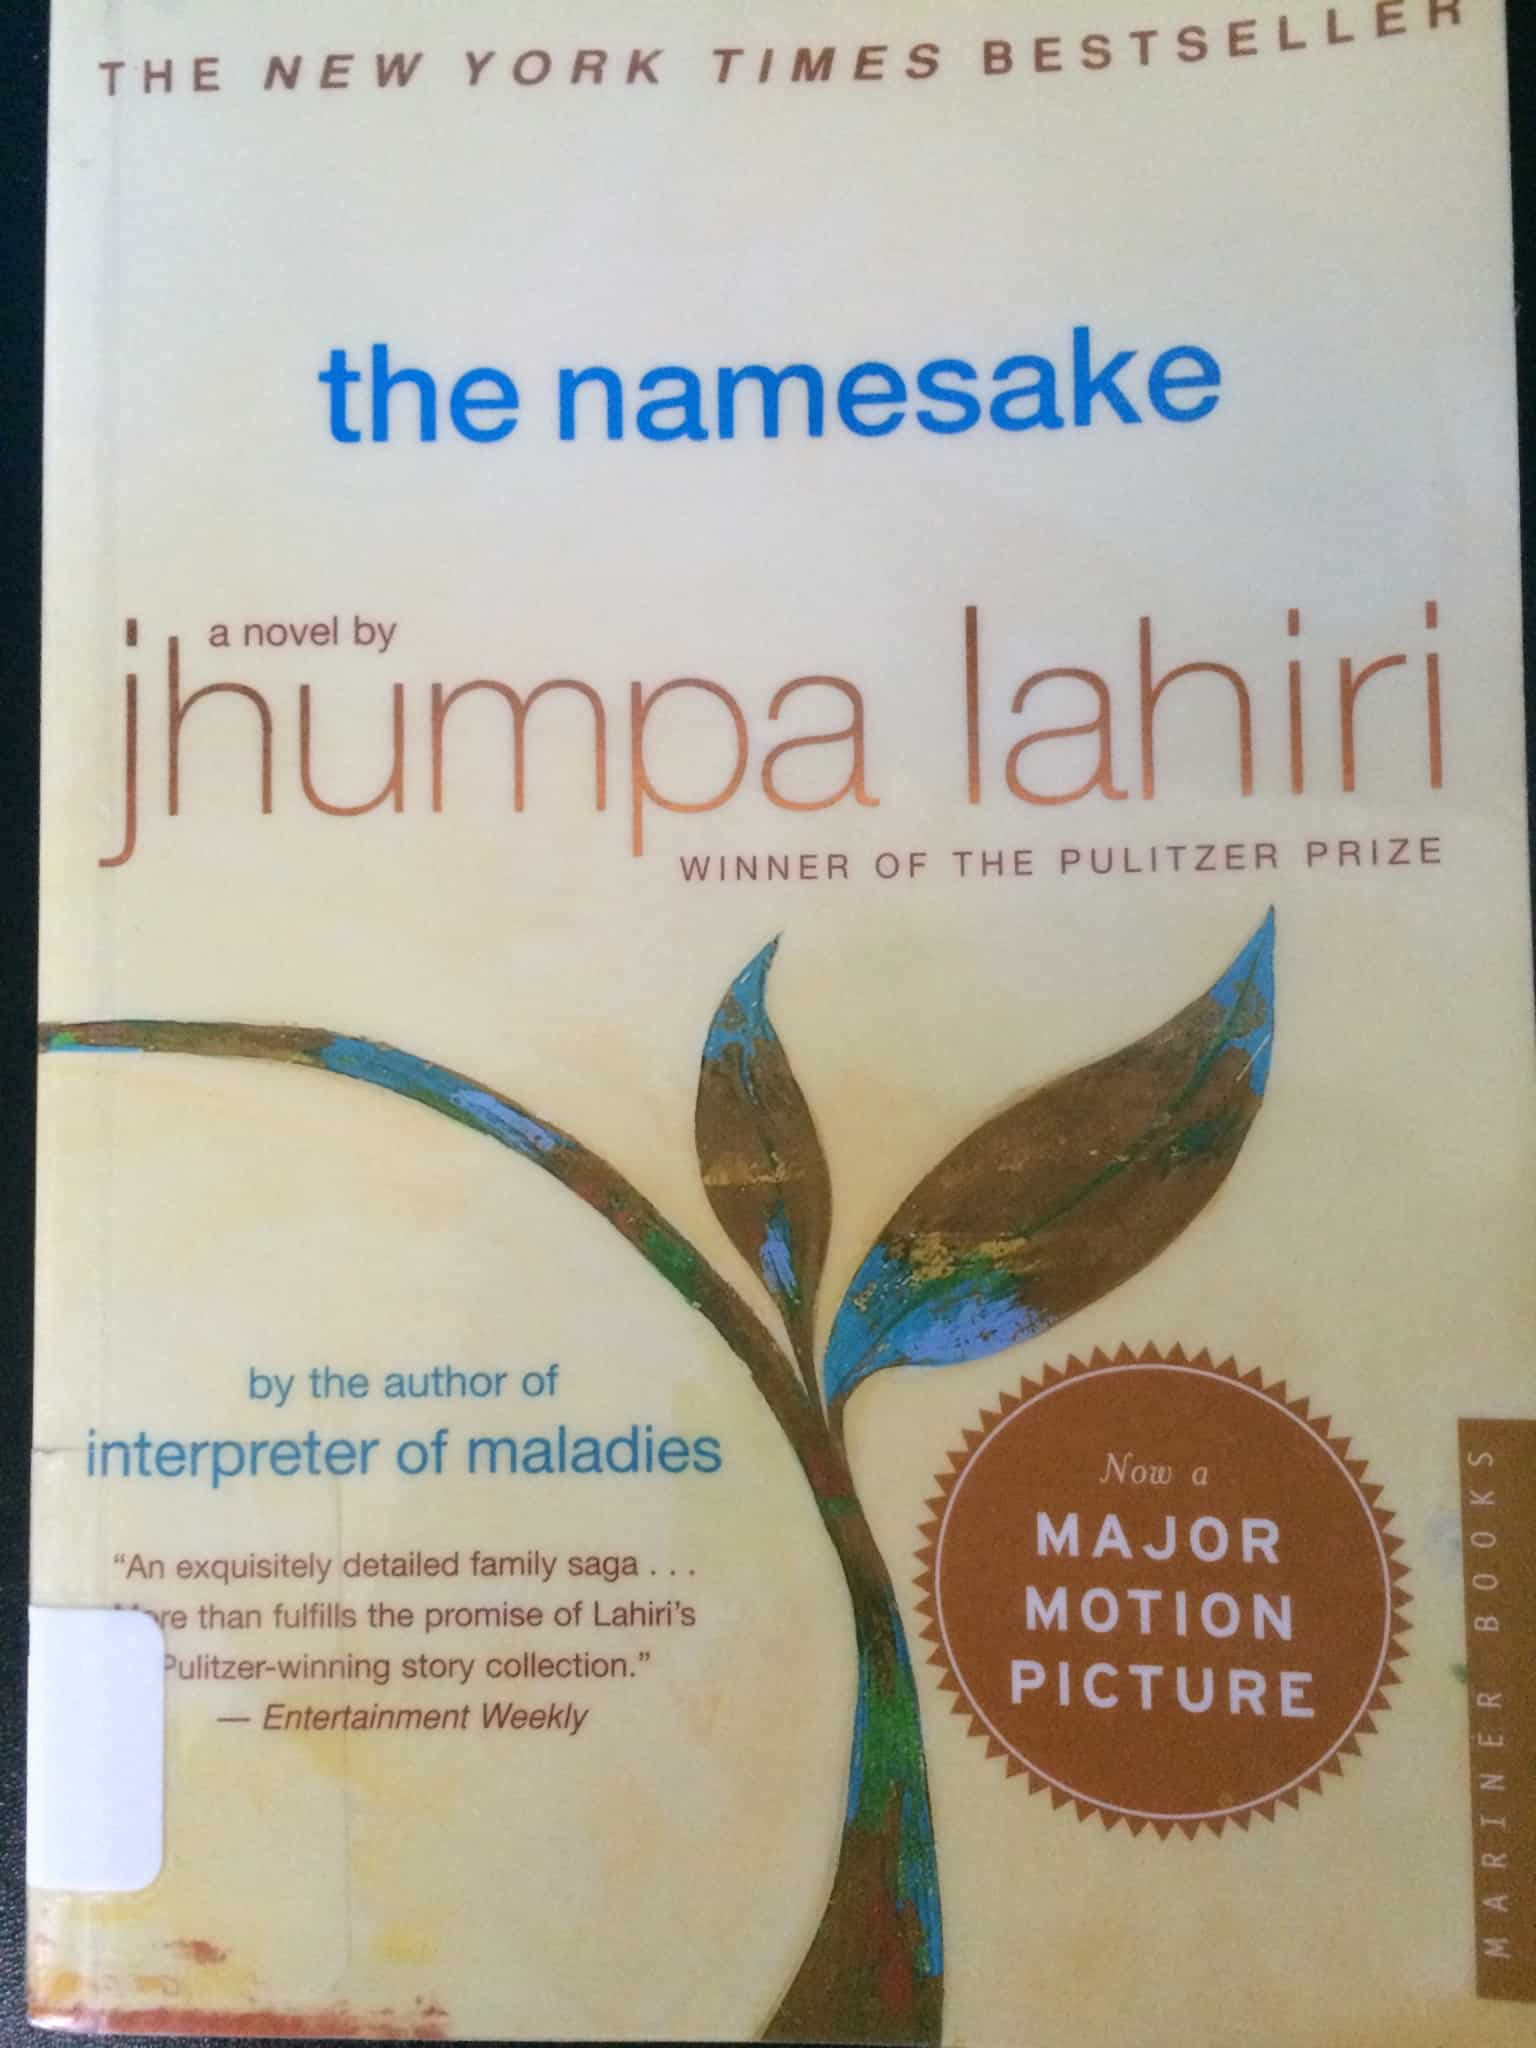 cultural differences essay on the namesake by jhumpa lahiri